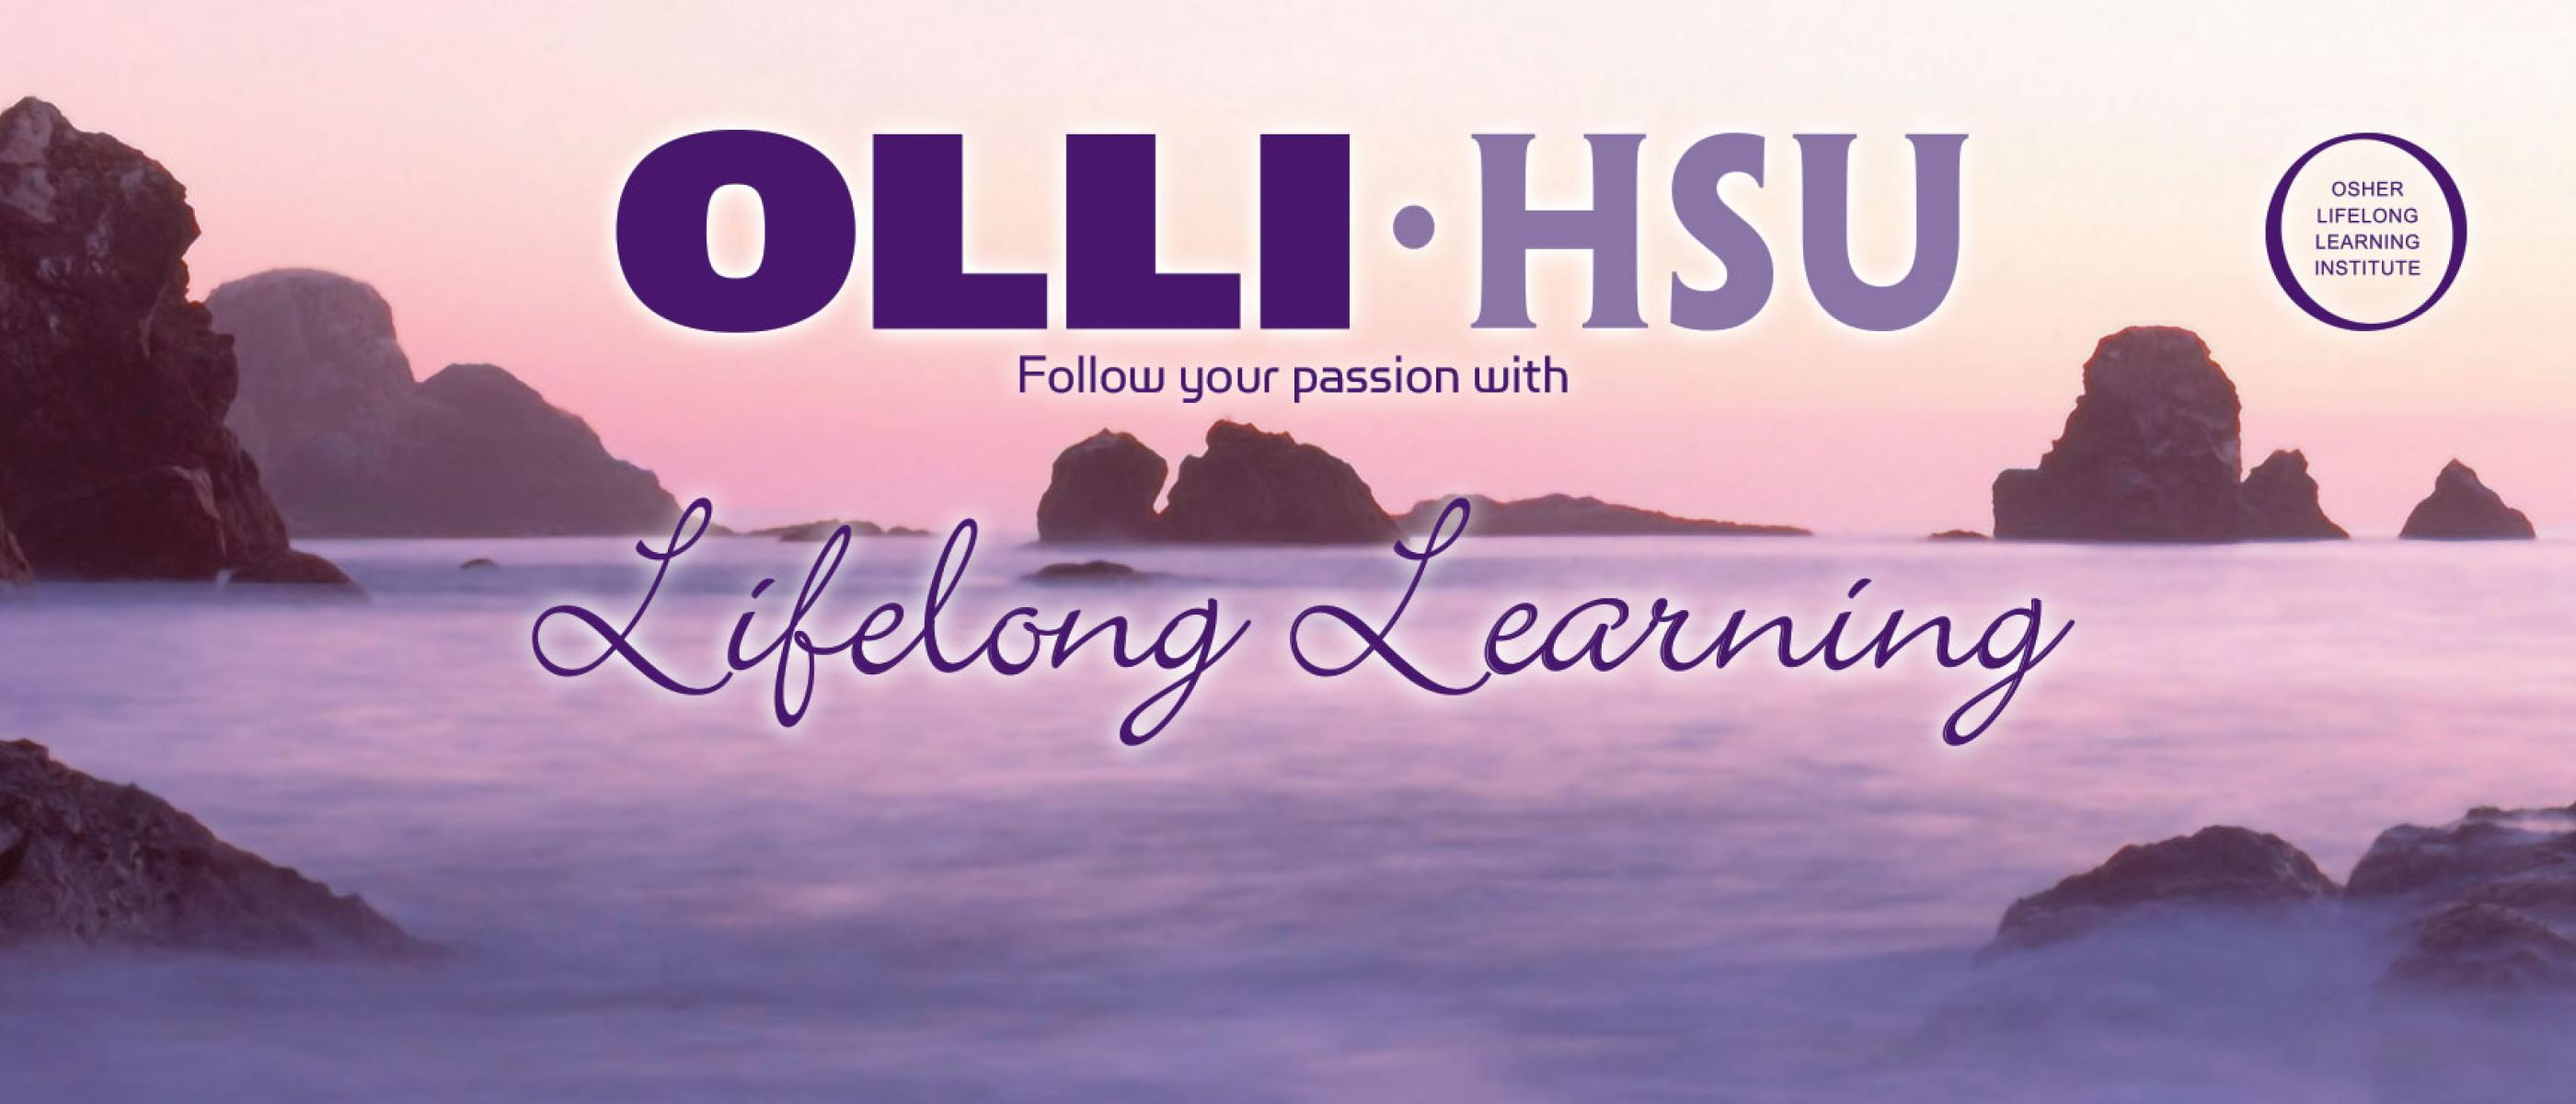 OLLI at HSU - Follow your passion with lifelong learning - Osher Lifelong Learning Institute